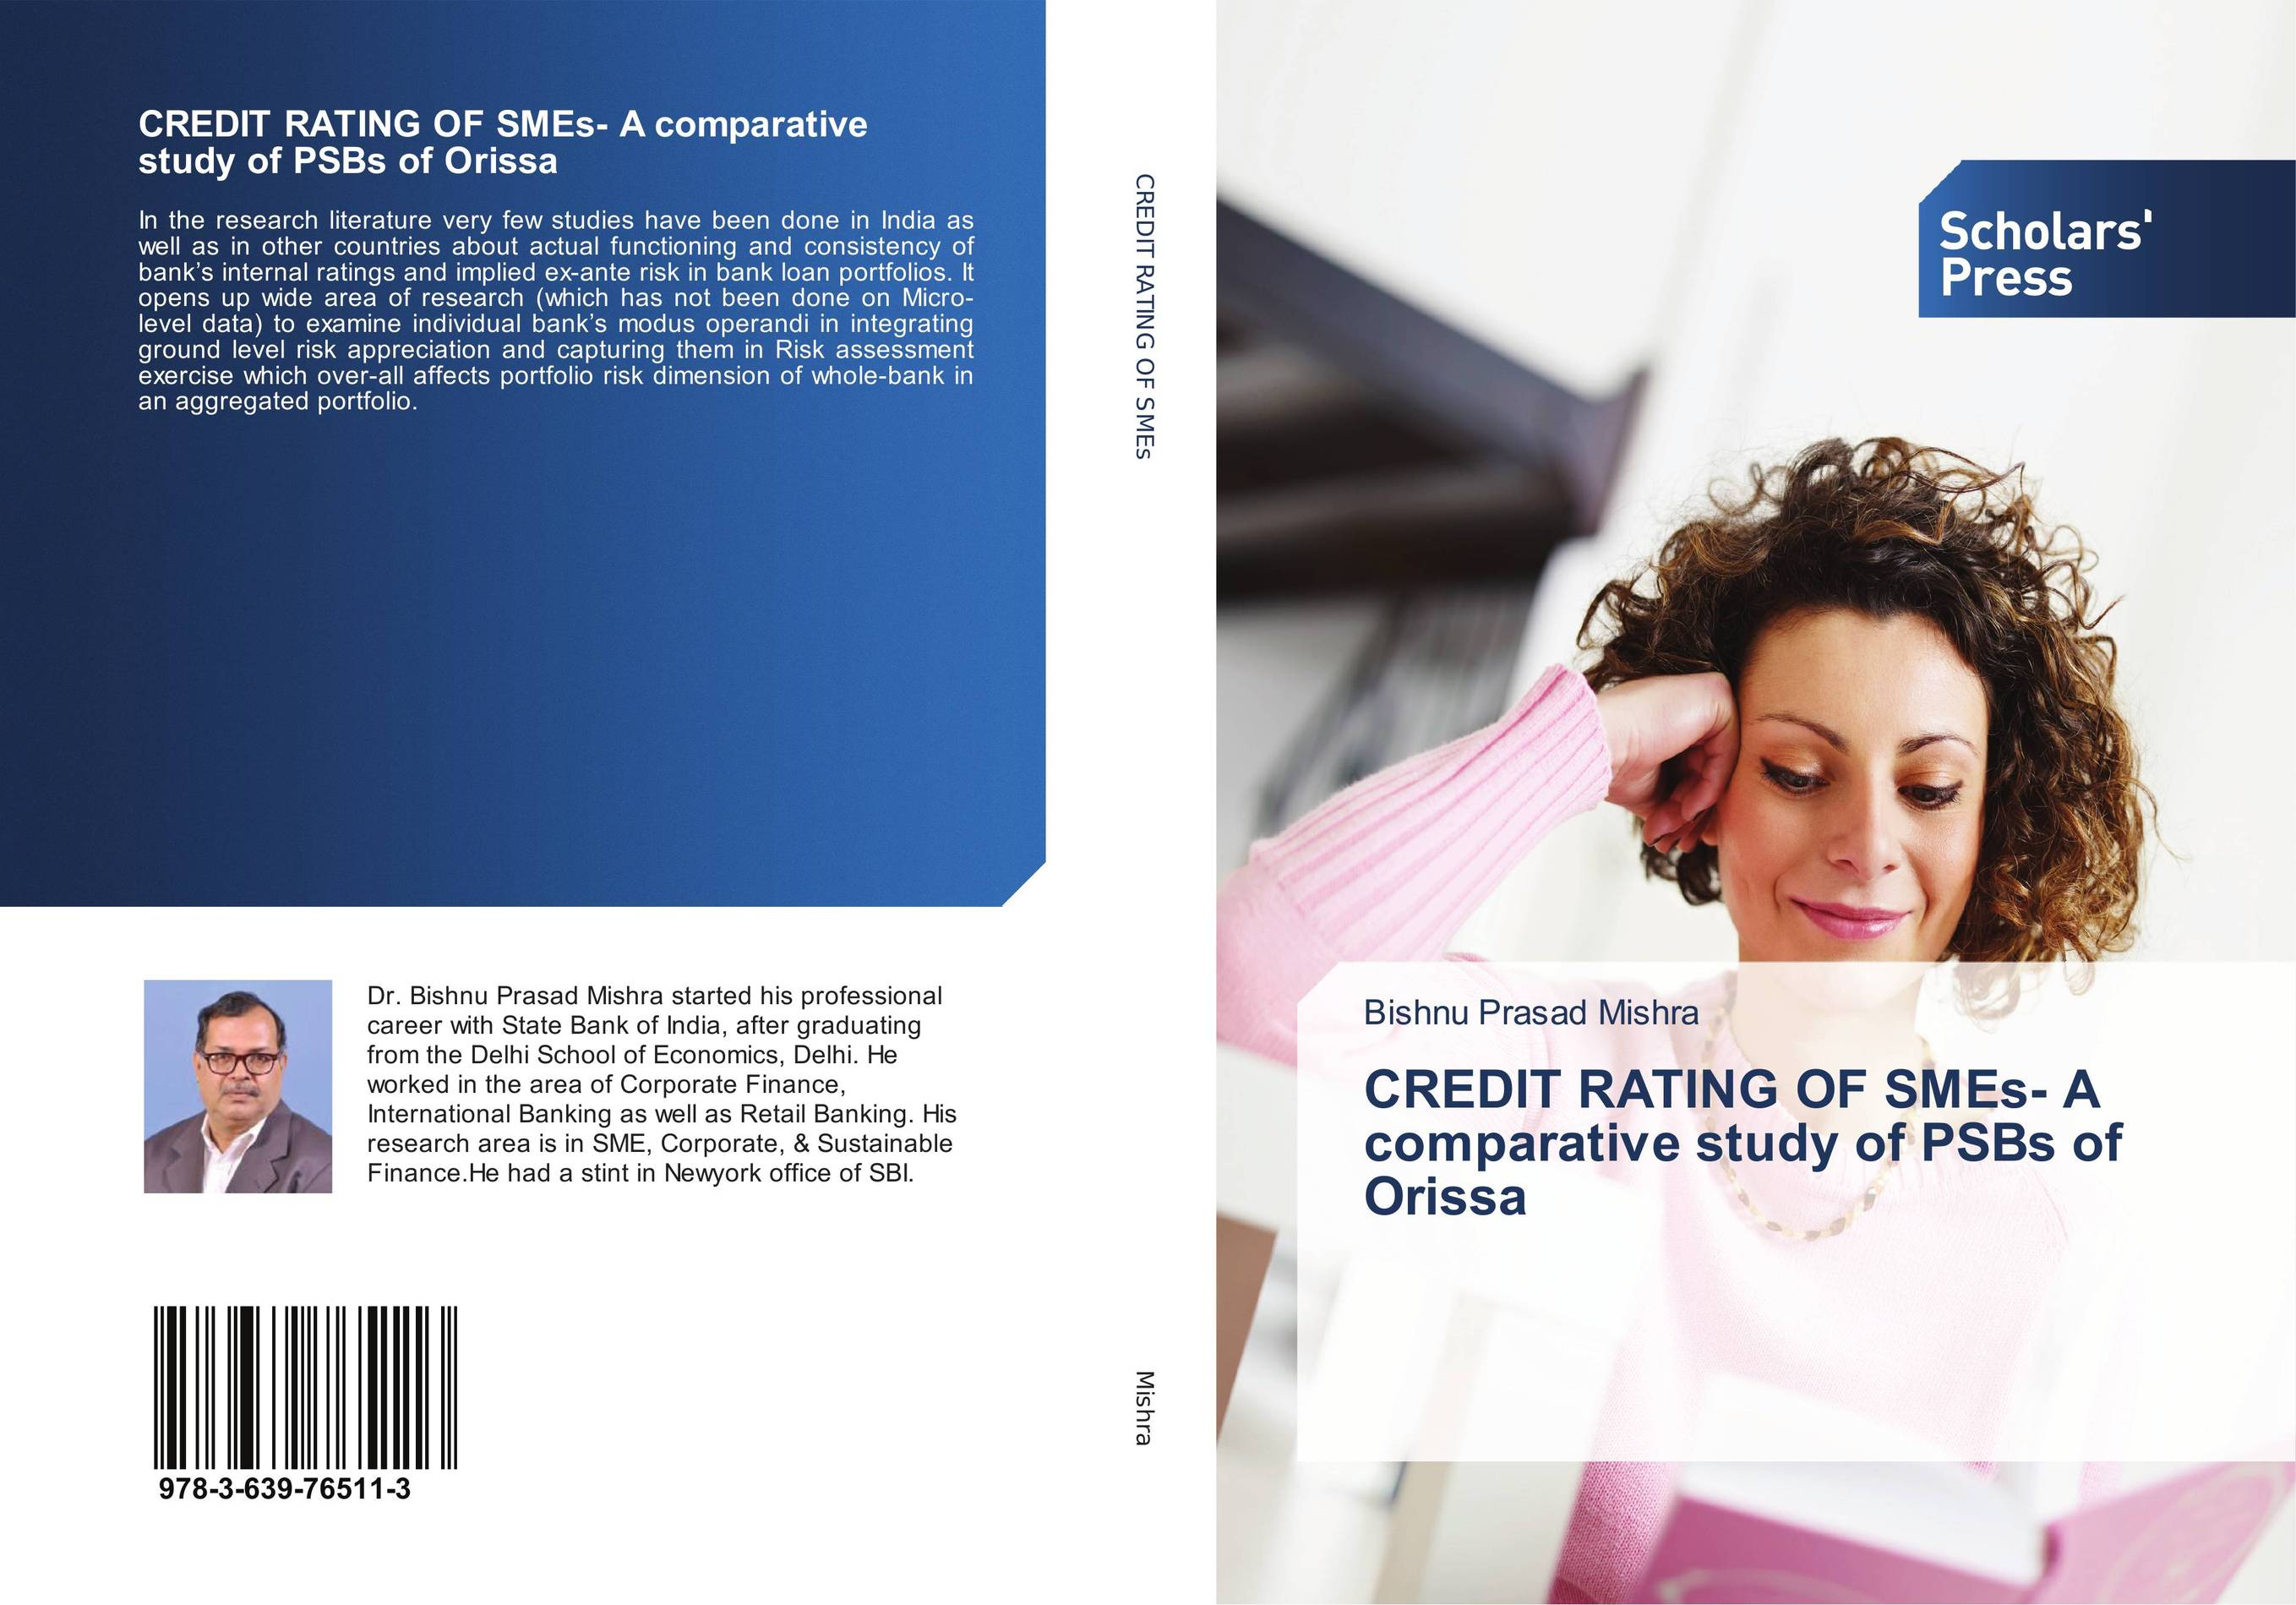 CREDIT RATING OF SMEs- A comparative study of PSBs of Orissa risk regulation and administrative constitutionalism